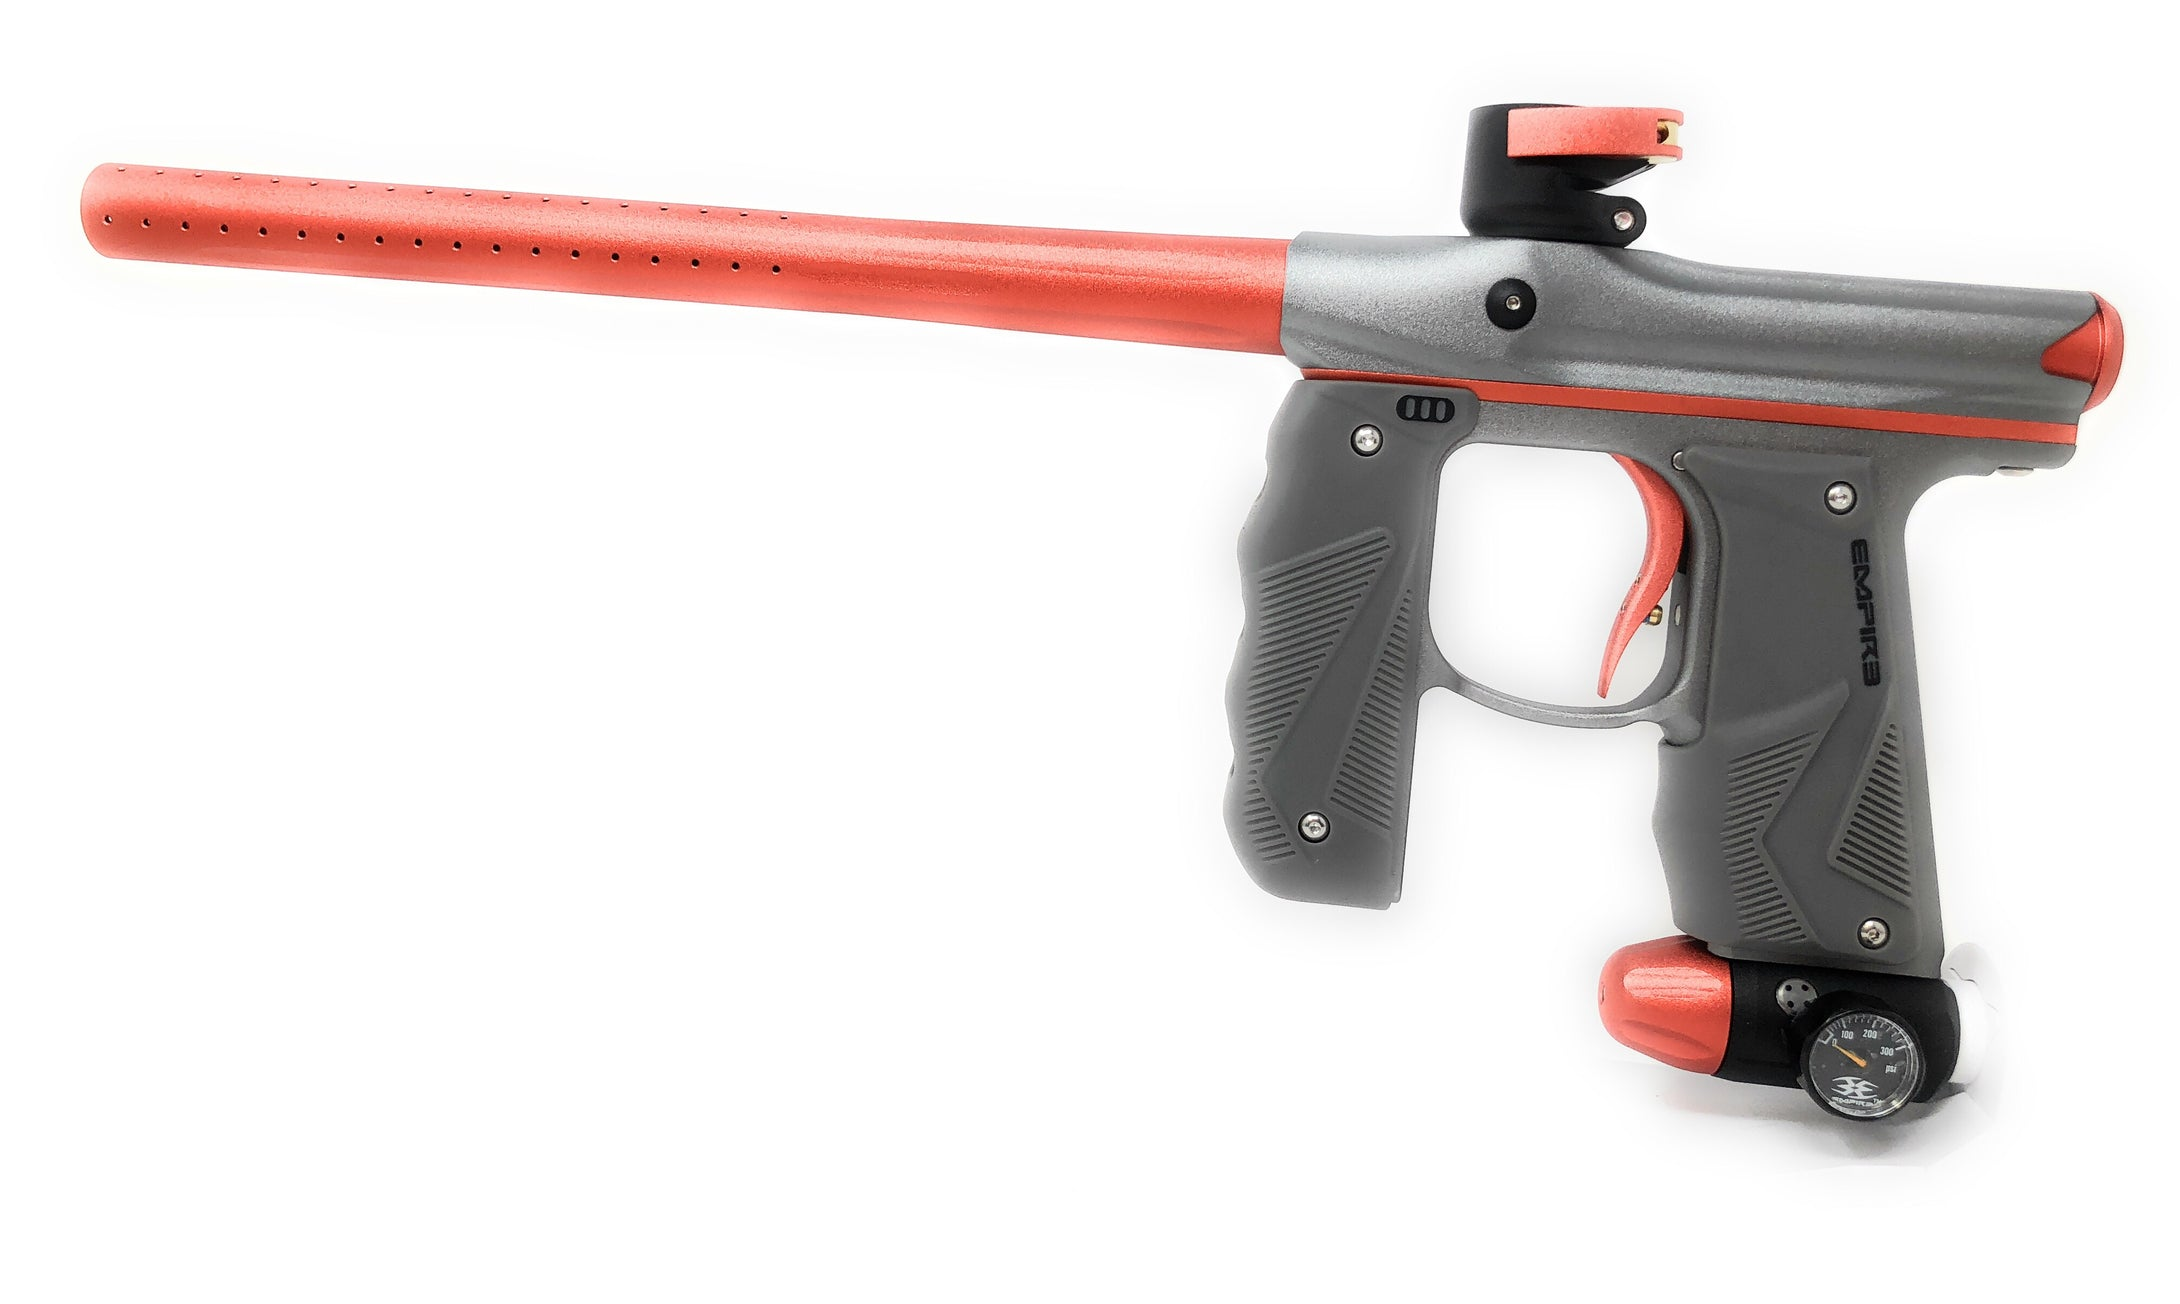 Photos of Empire Mini GS Paintball Marker - Grey/Orange. Photo taken by drpaintball.com